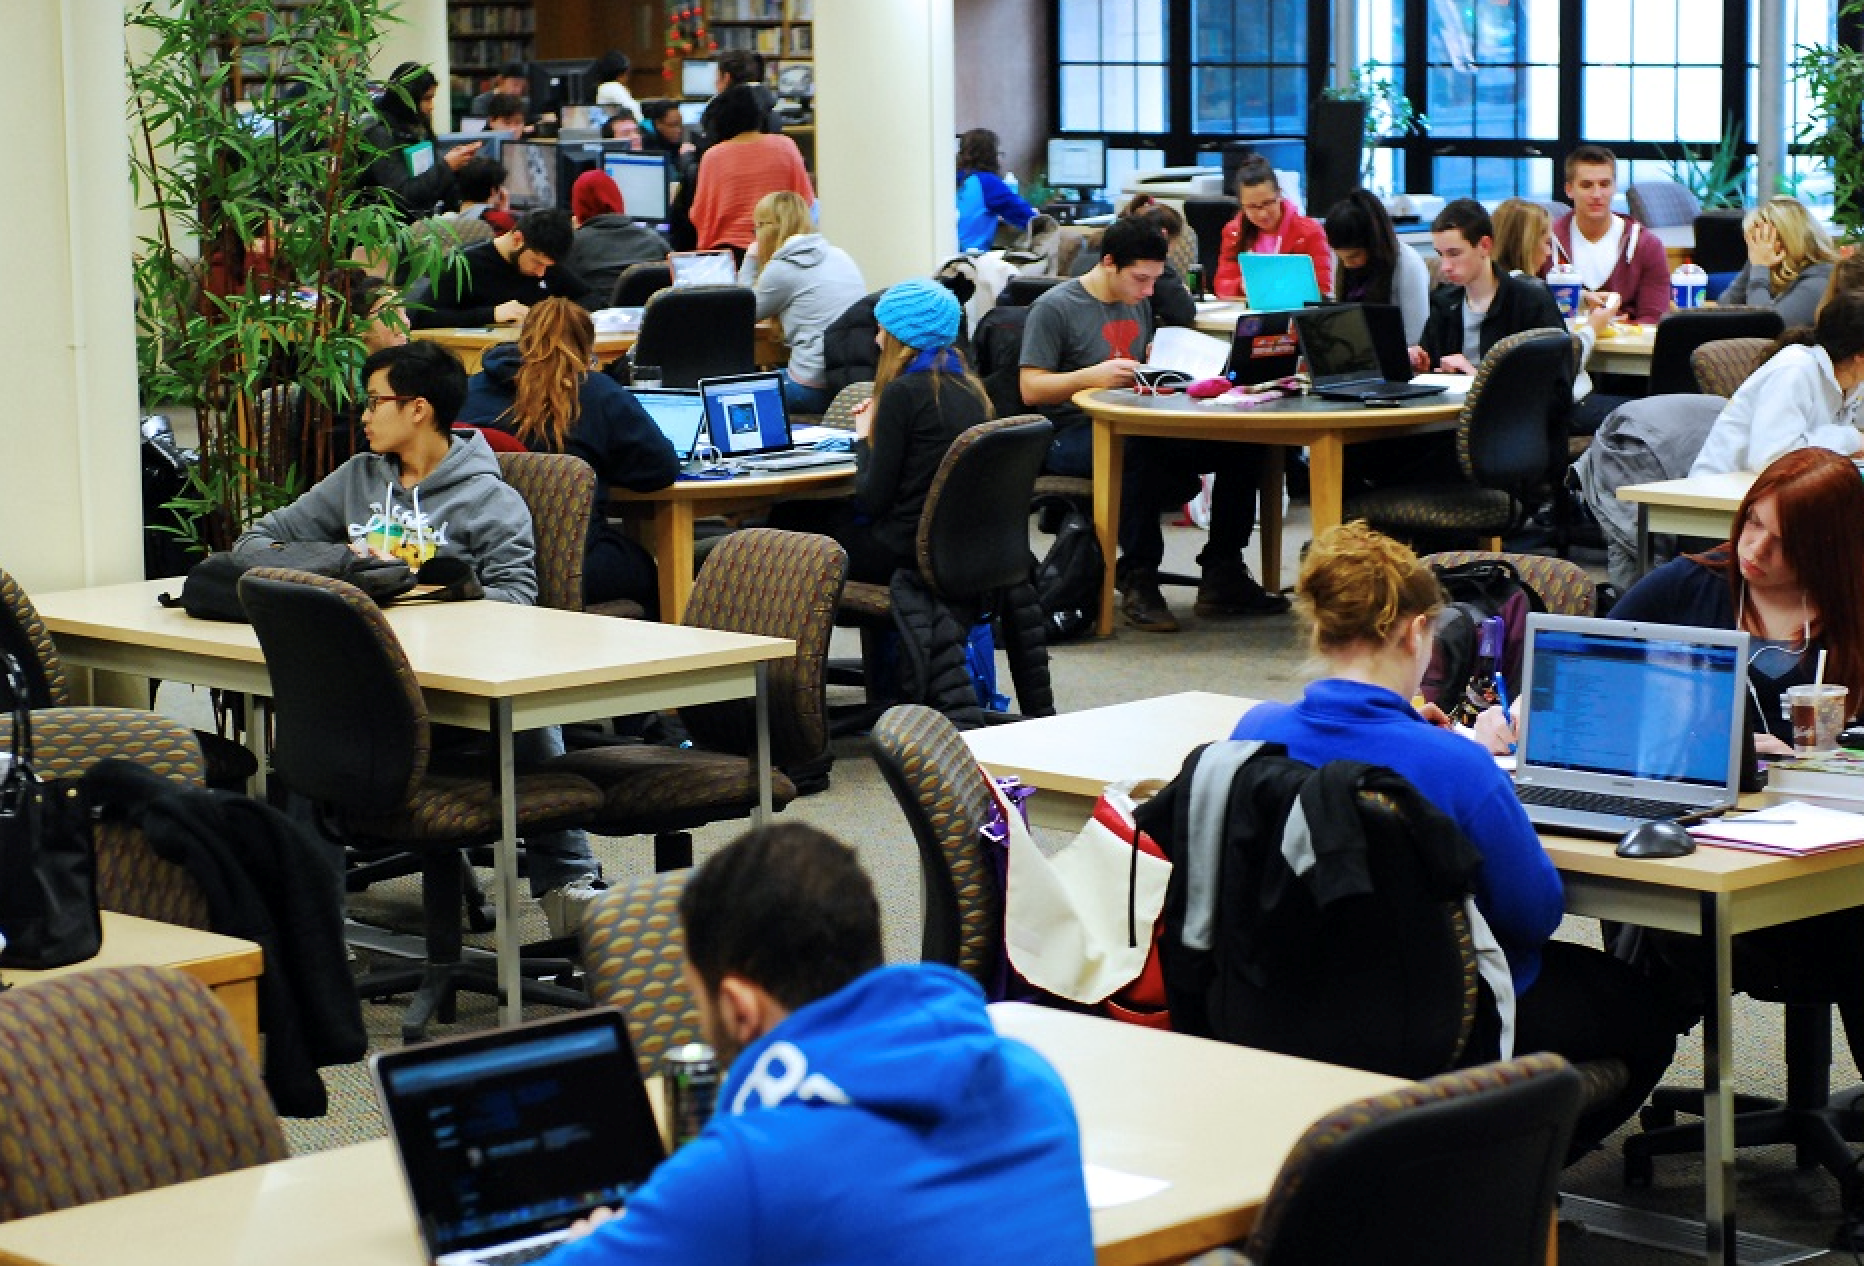 Photograph from the University of Detroit Mercy library. This photo shows a typical day for students who use the library.